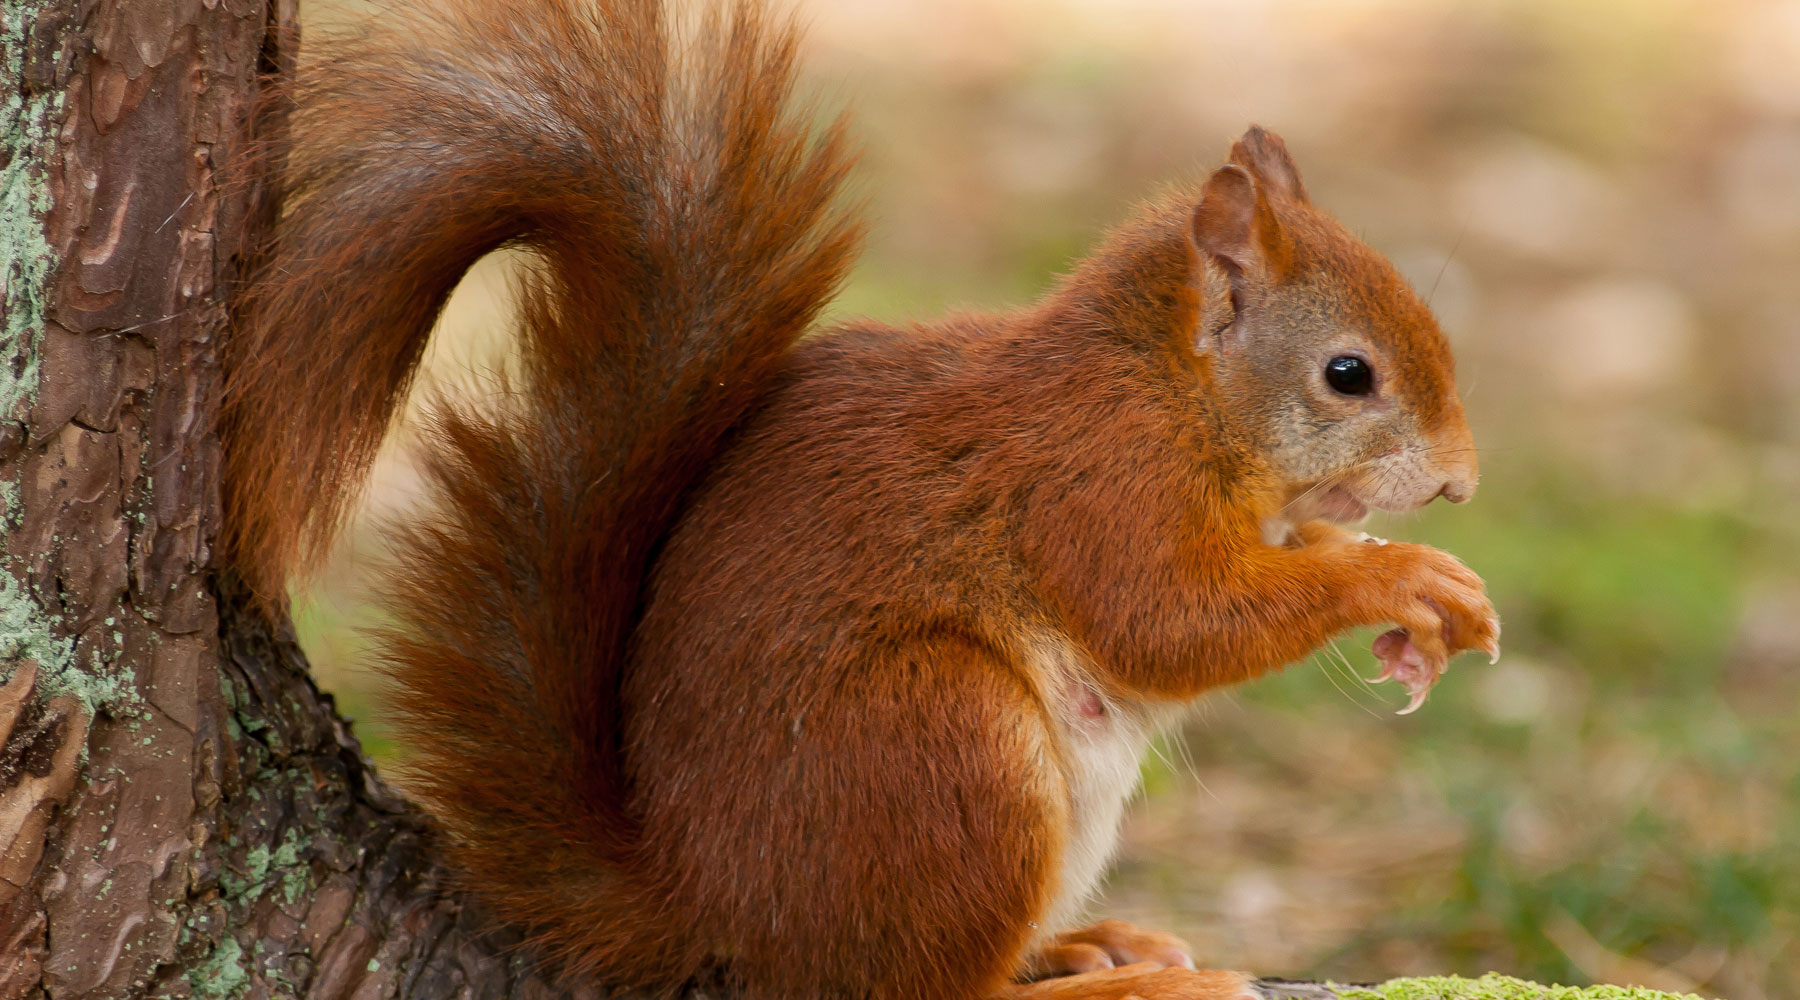 Mike Snelle | Red Squirrel